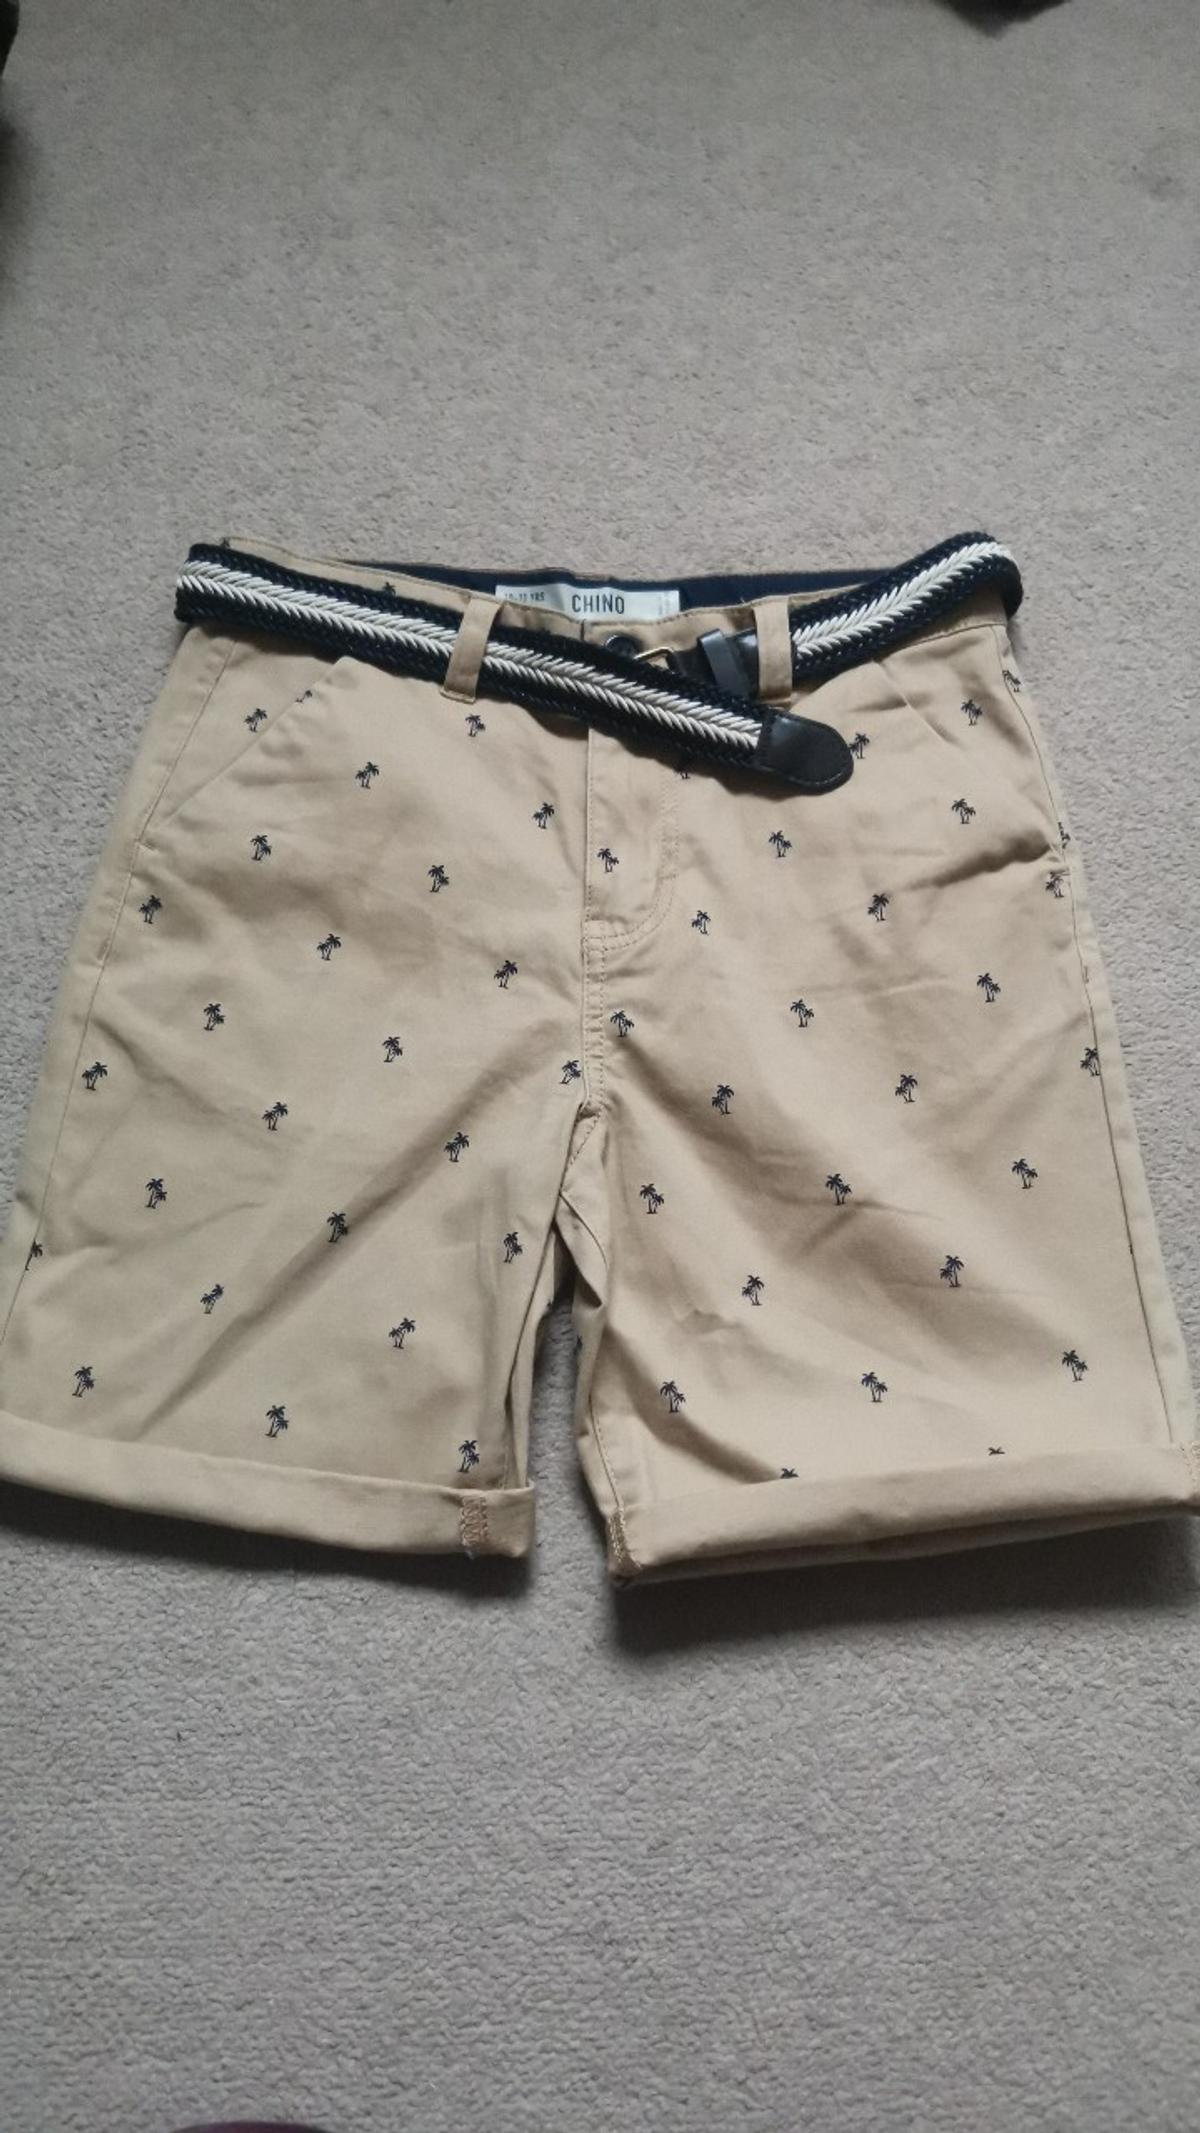 Boys chino shorts with belt. Age 10-11.